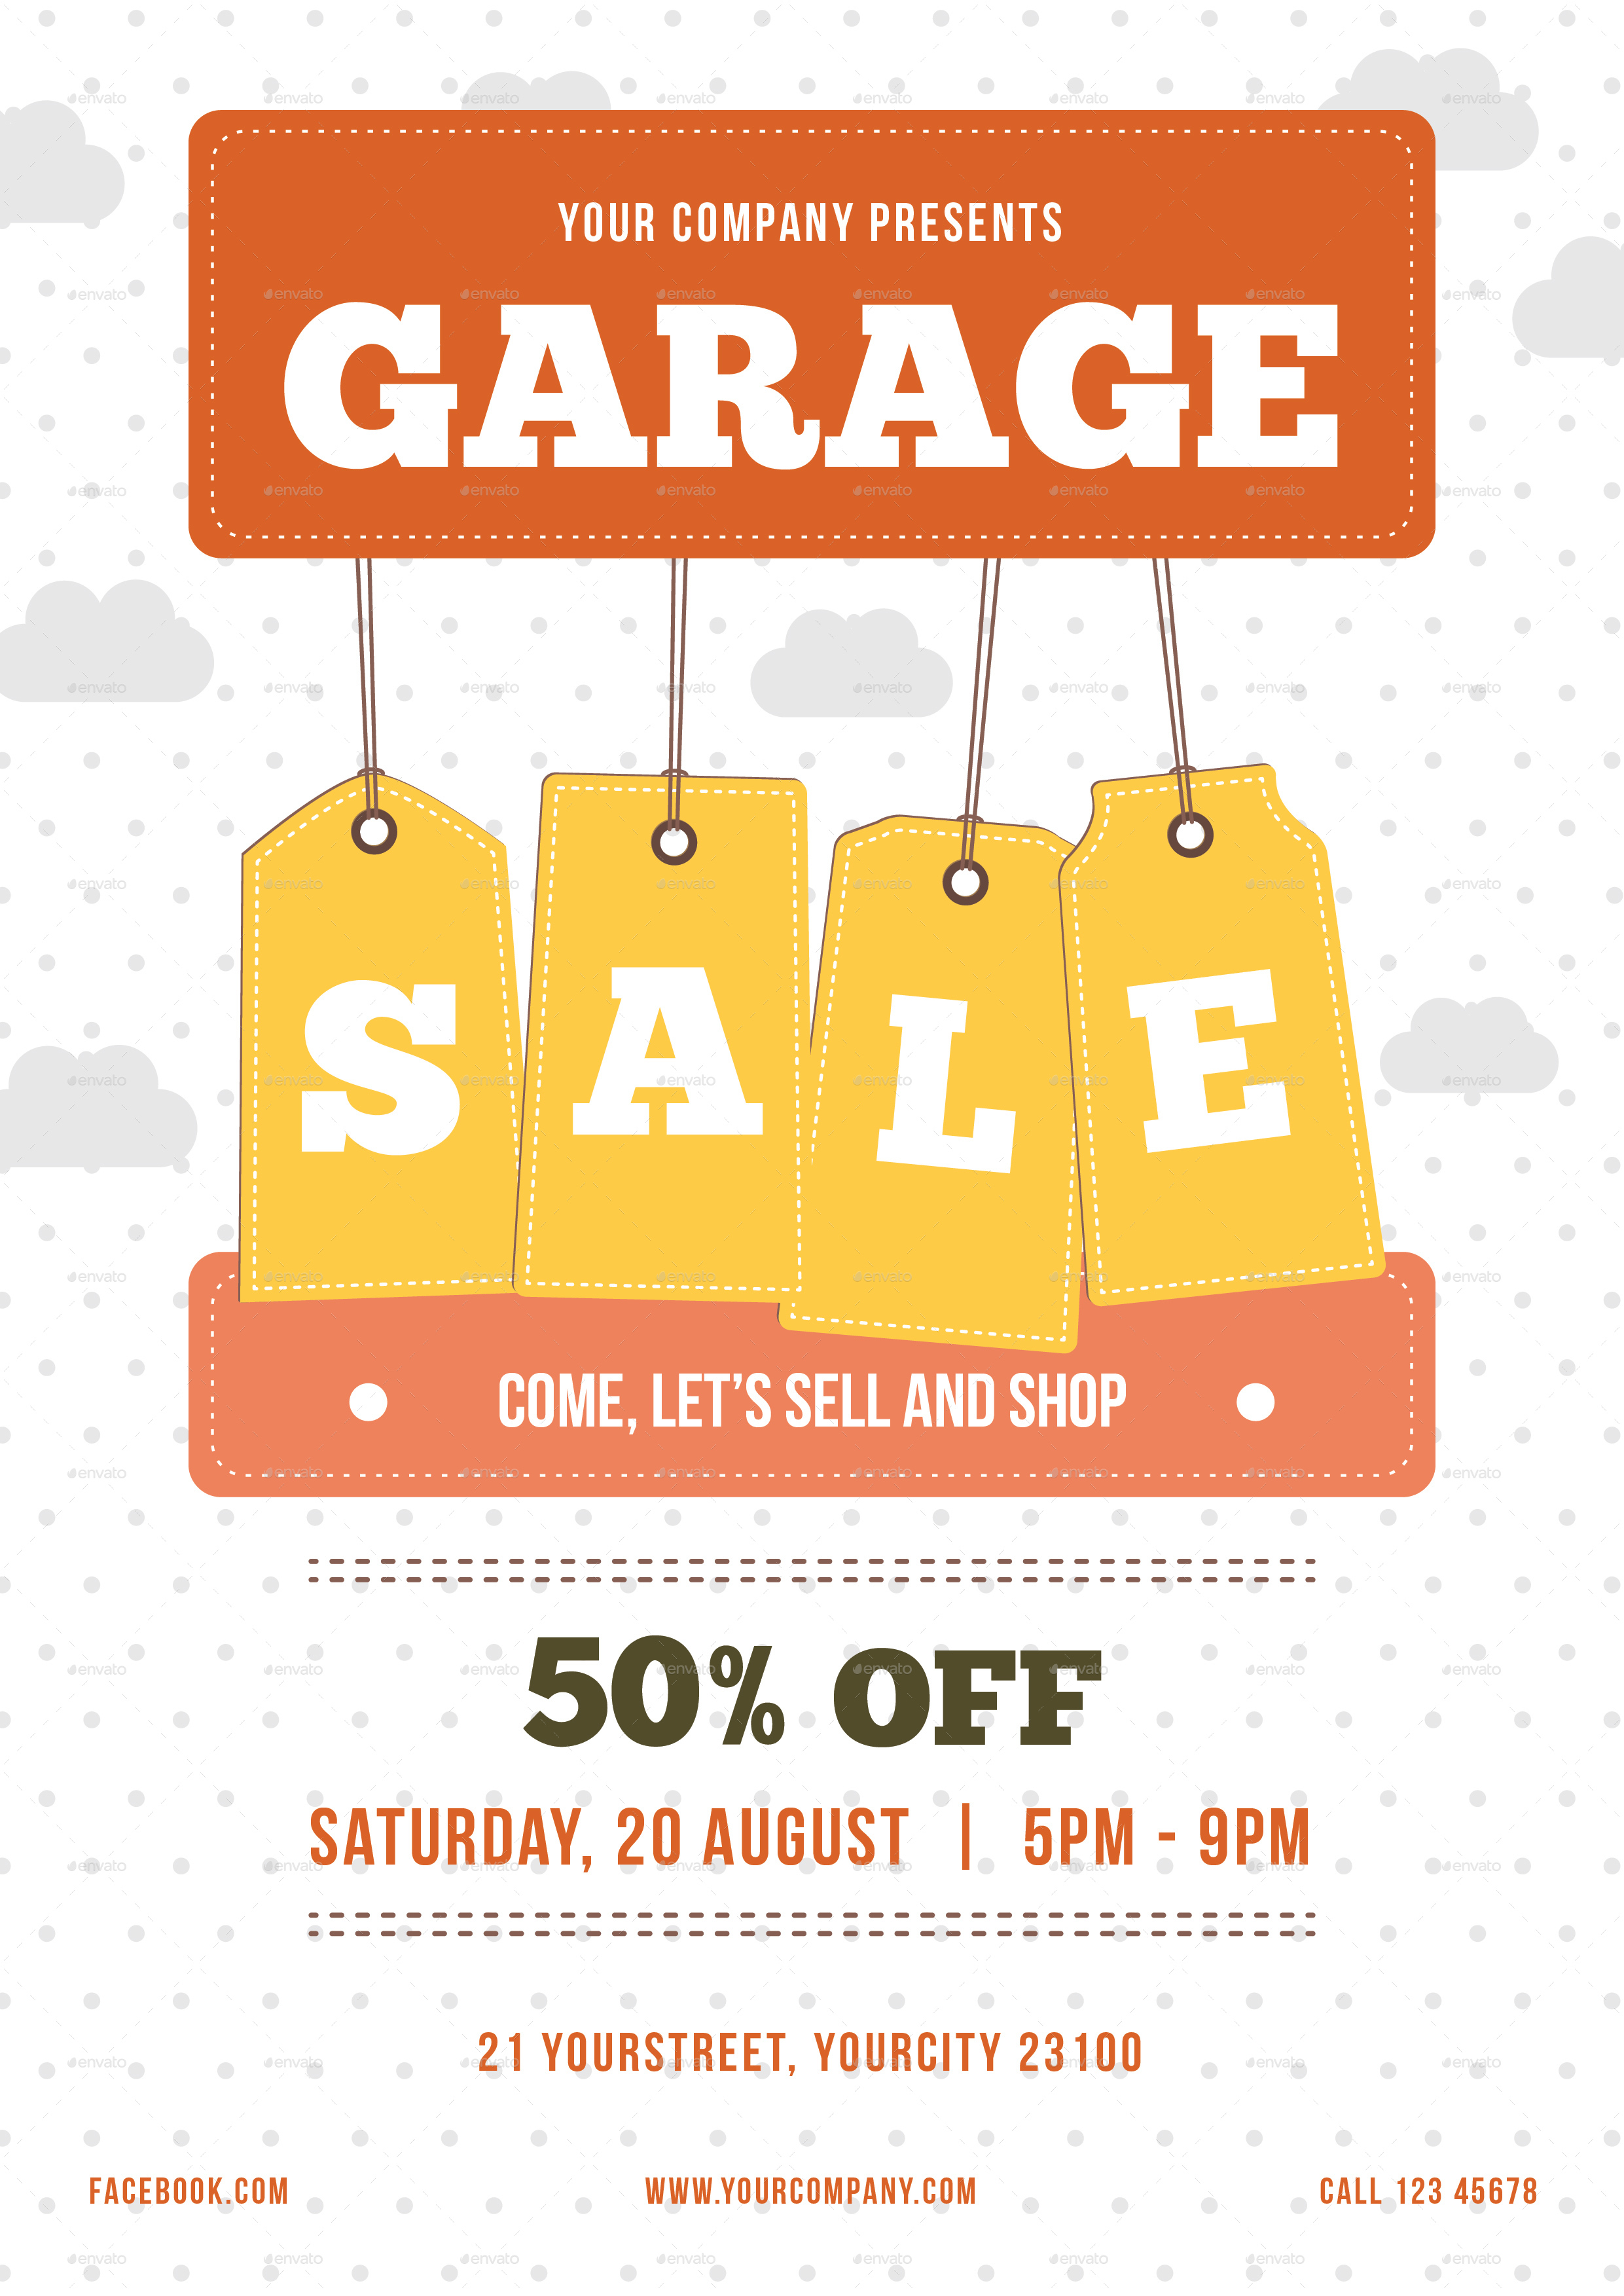 Garage Sale Flyer by infinite78910 | GraphicRiver